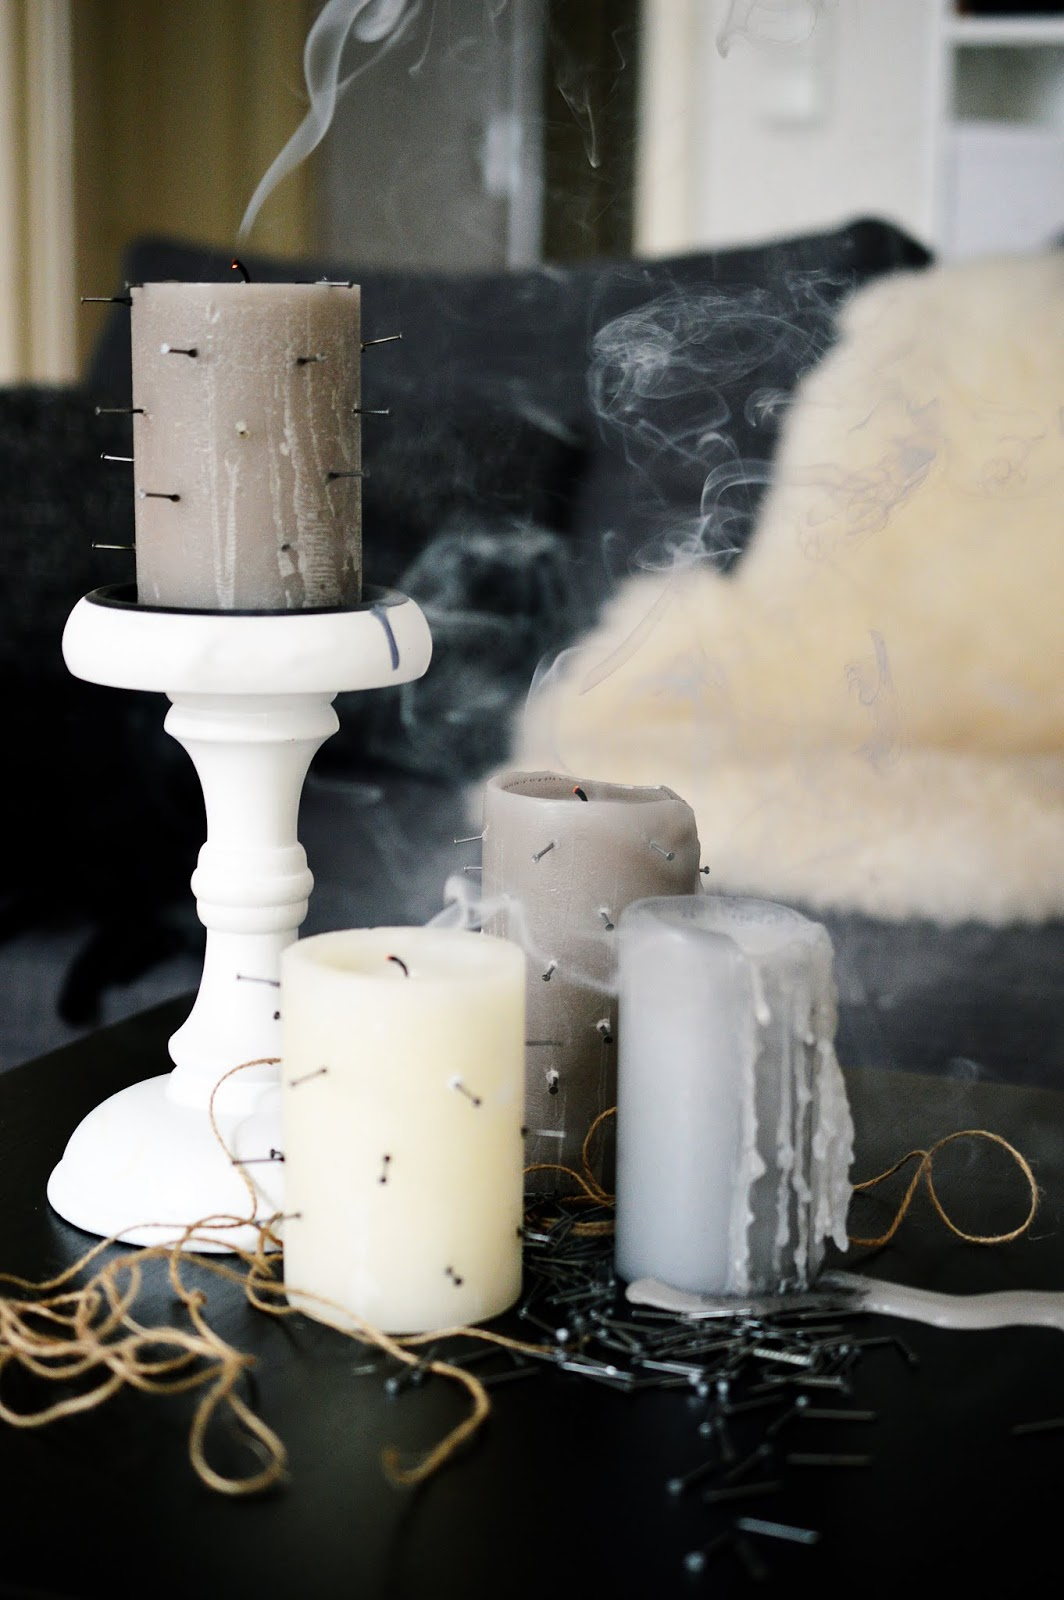 blown out candles with nails inserted in the sides for Halloween